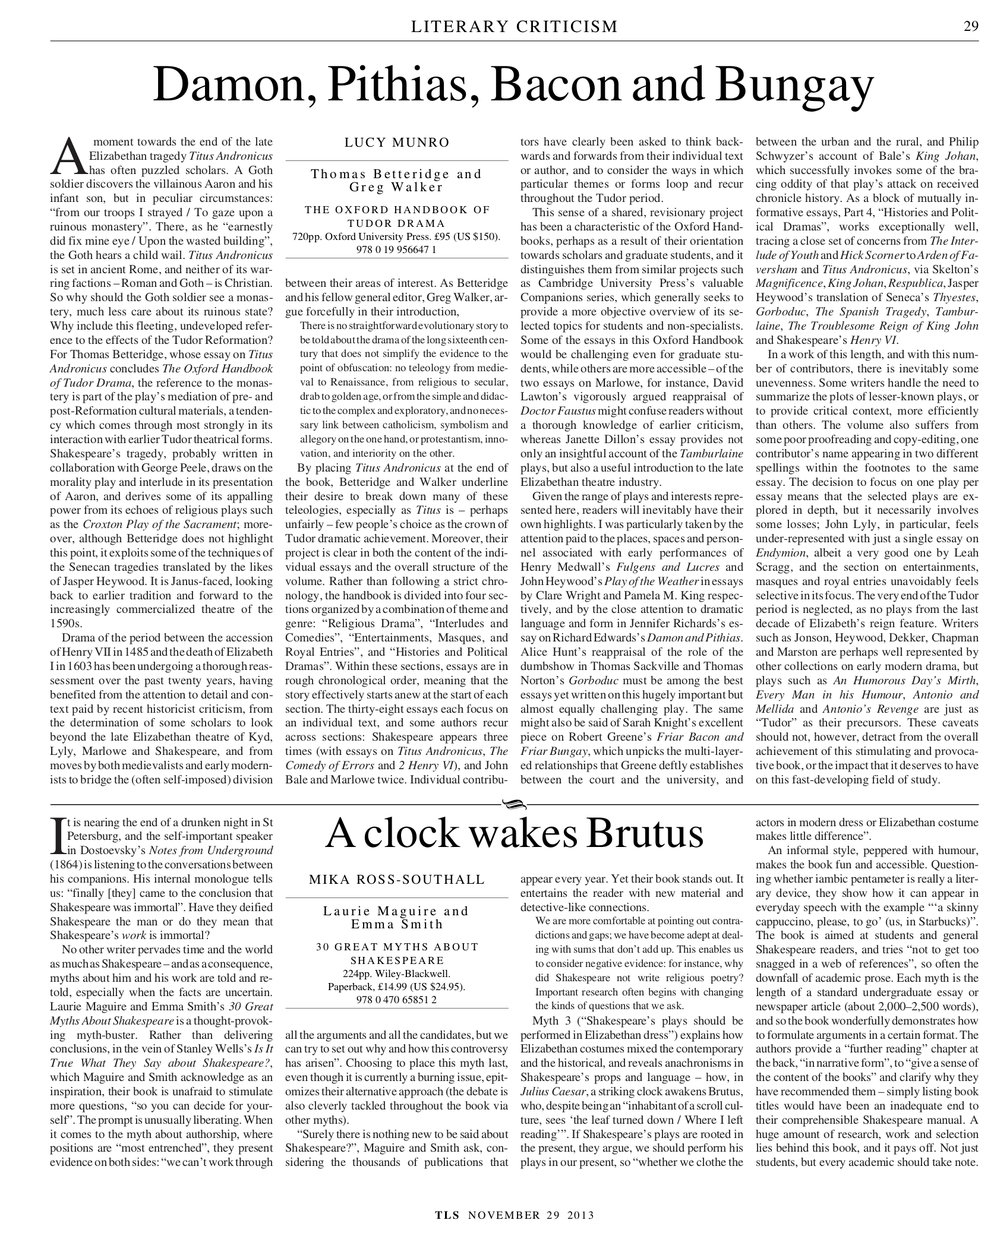 A clock wakes Brutus, Laurie Maguire and Emma Smith, Published in The Times Literary Supplement, November 29, 2013